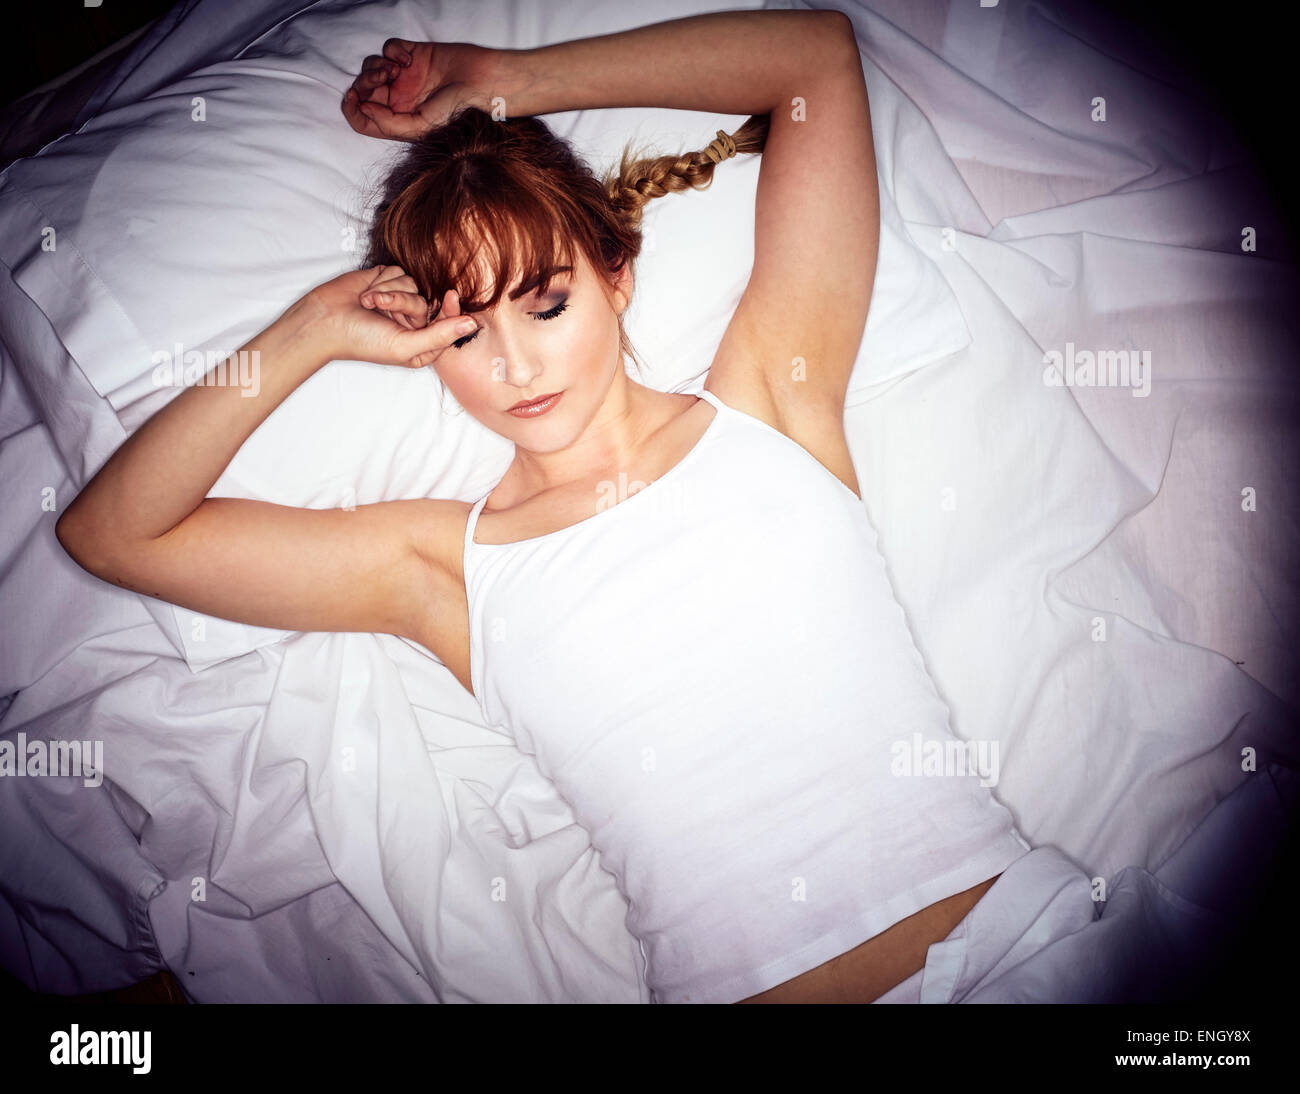 Girl laid in bed not able to sleep Stock Photo